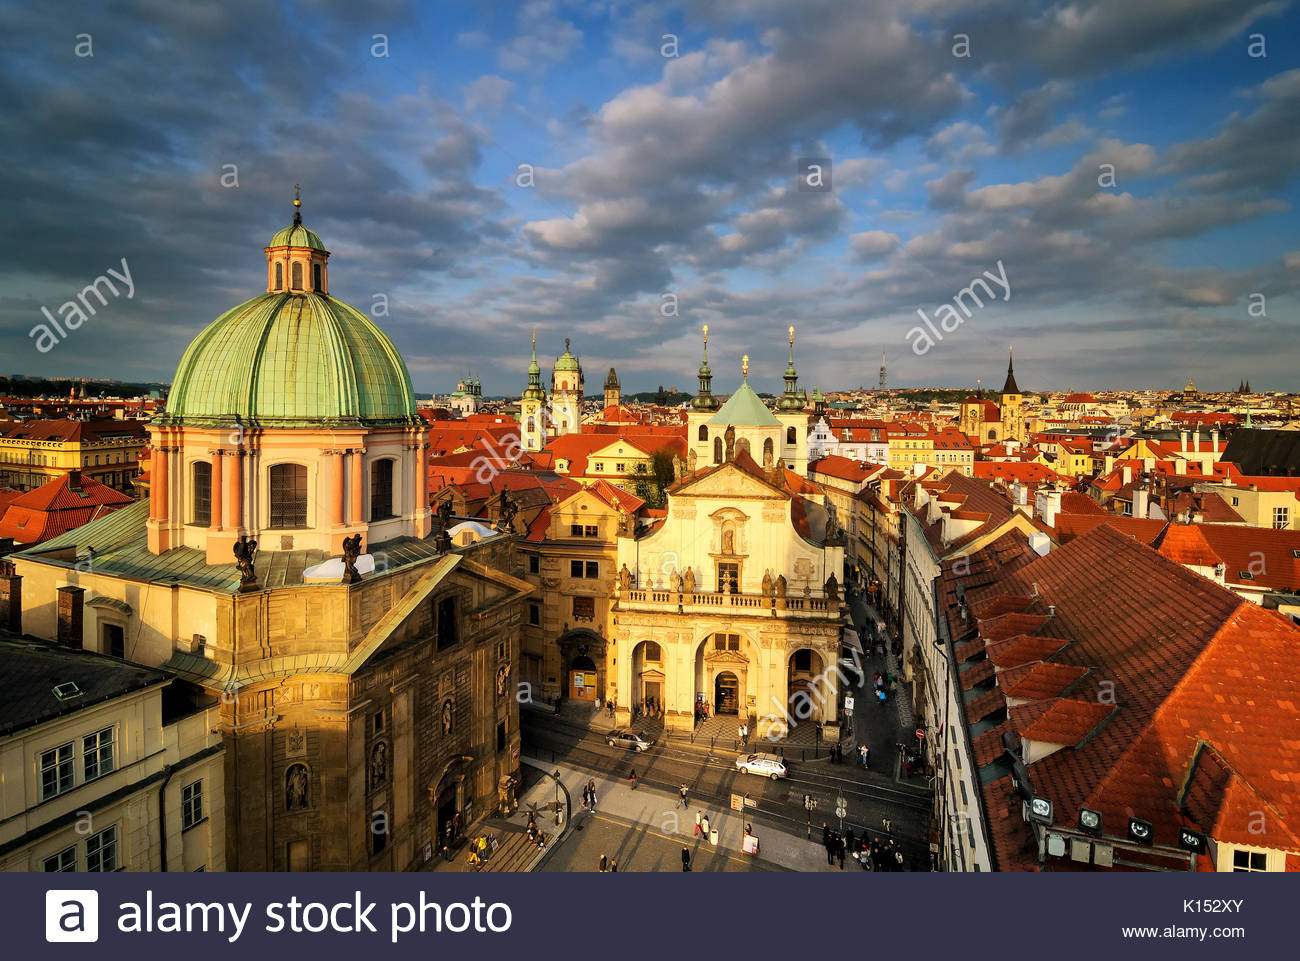 Sunset view at Square of the Knights of the Cross with heavy clouds, Prague, Czech republic - Stock Image